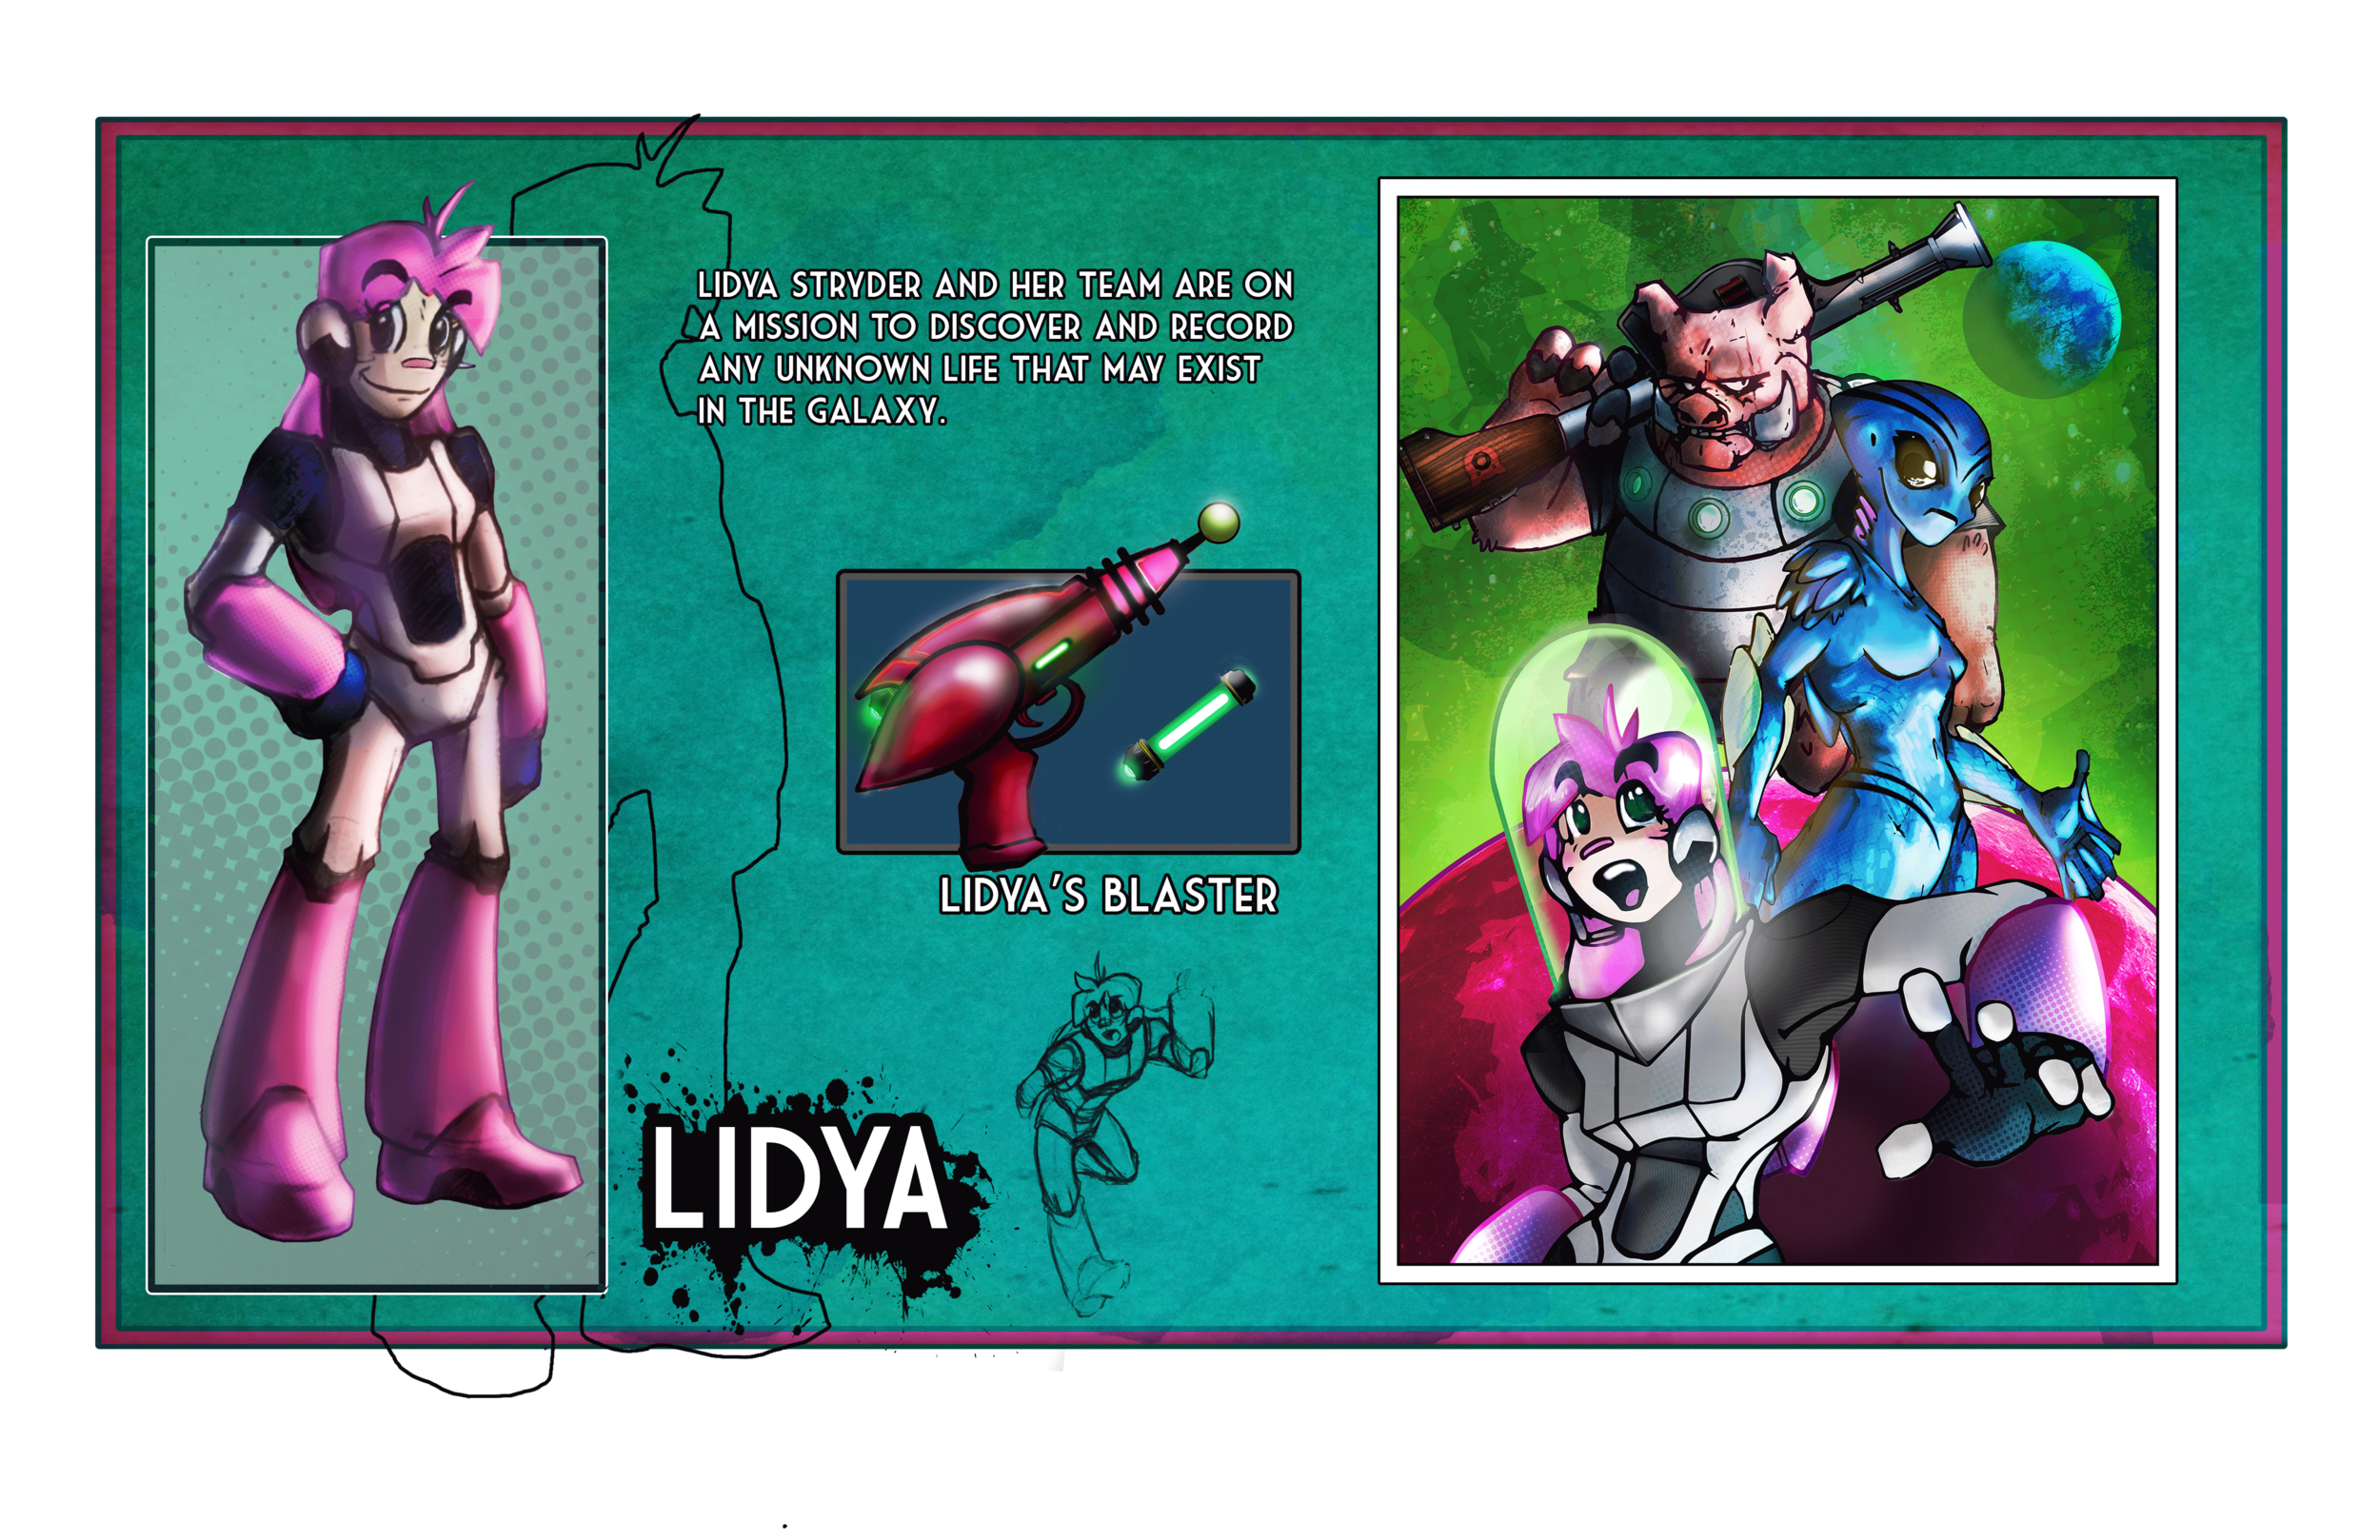 Space Adventurer, Lidya